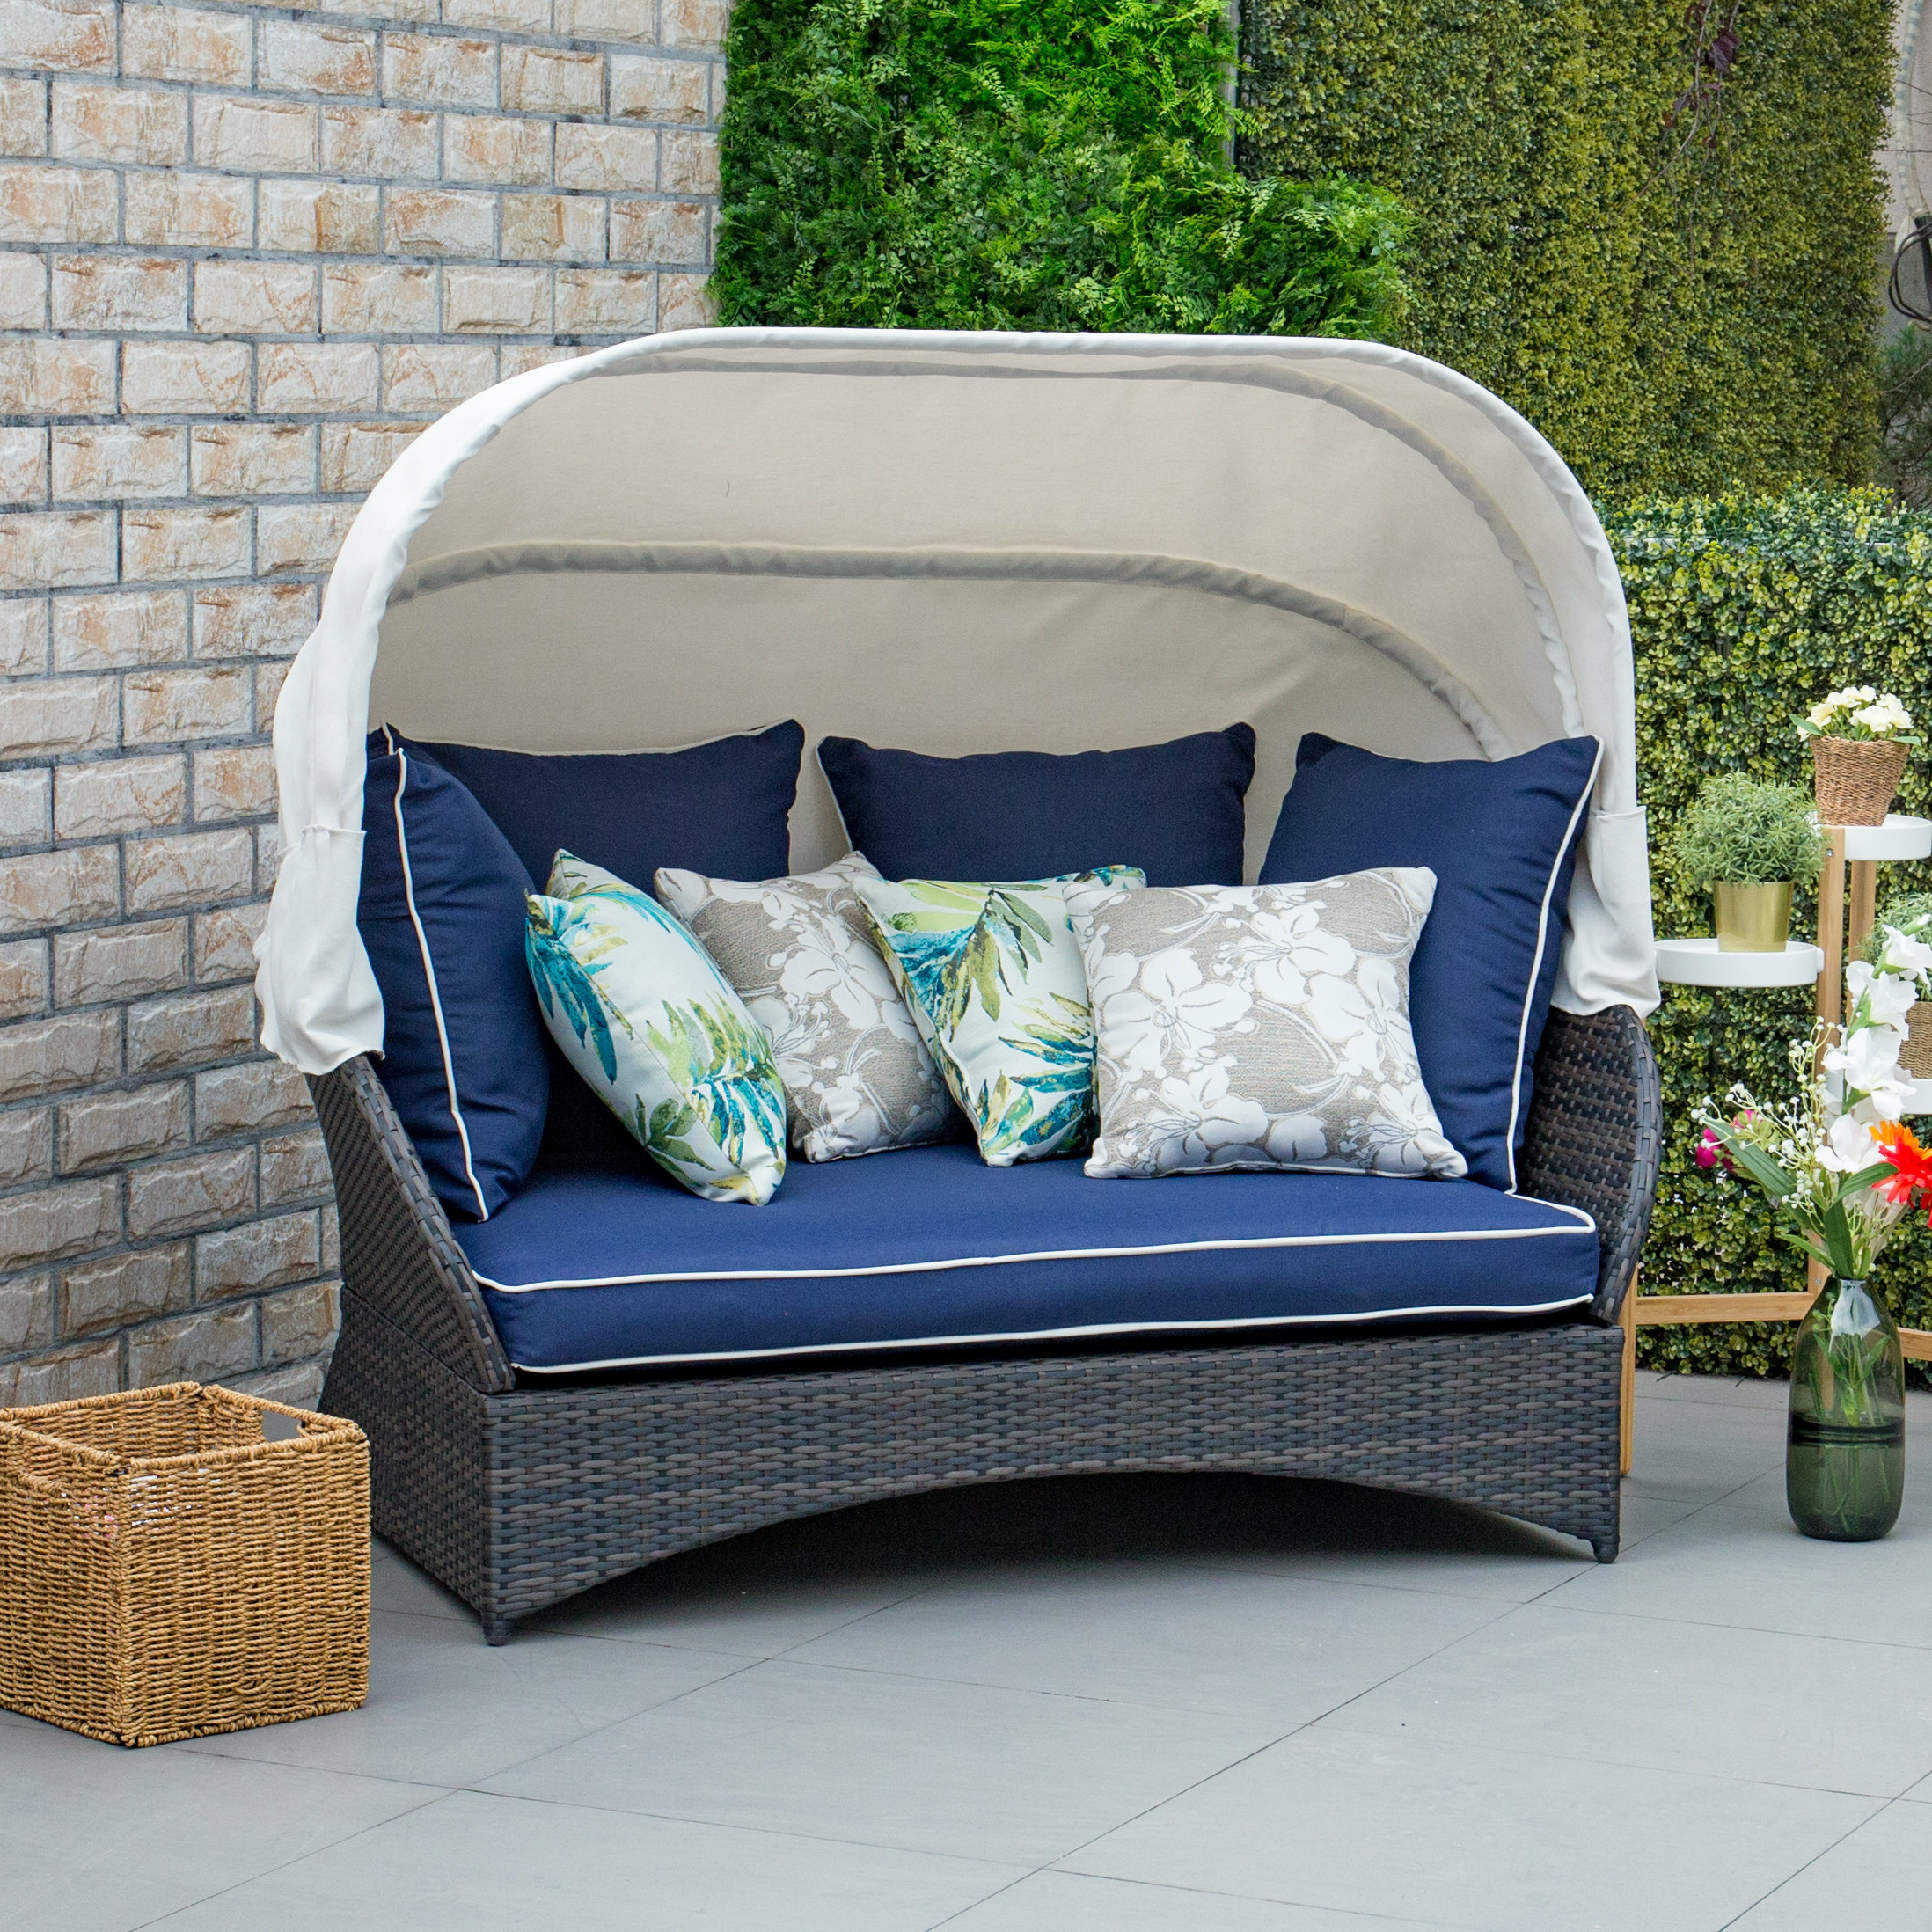 Lammers Outdoor Wicker Daybeds With Cushions Pertaining To Well Known Tolbert Wicker Patio Daybed With Ottoman (View 11 of 20)